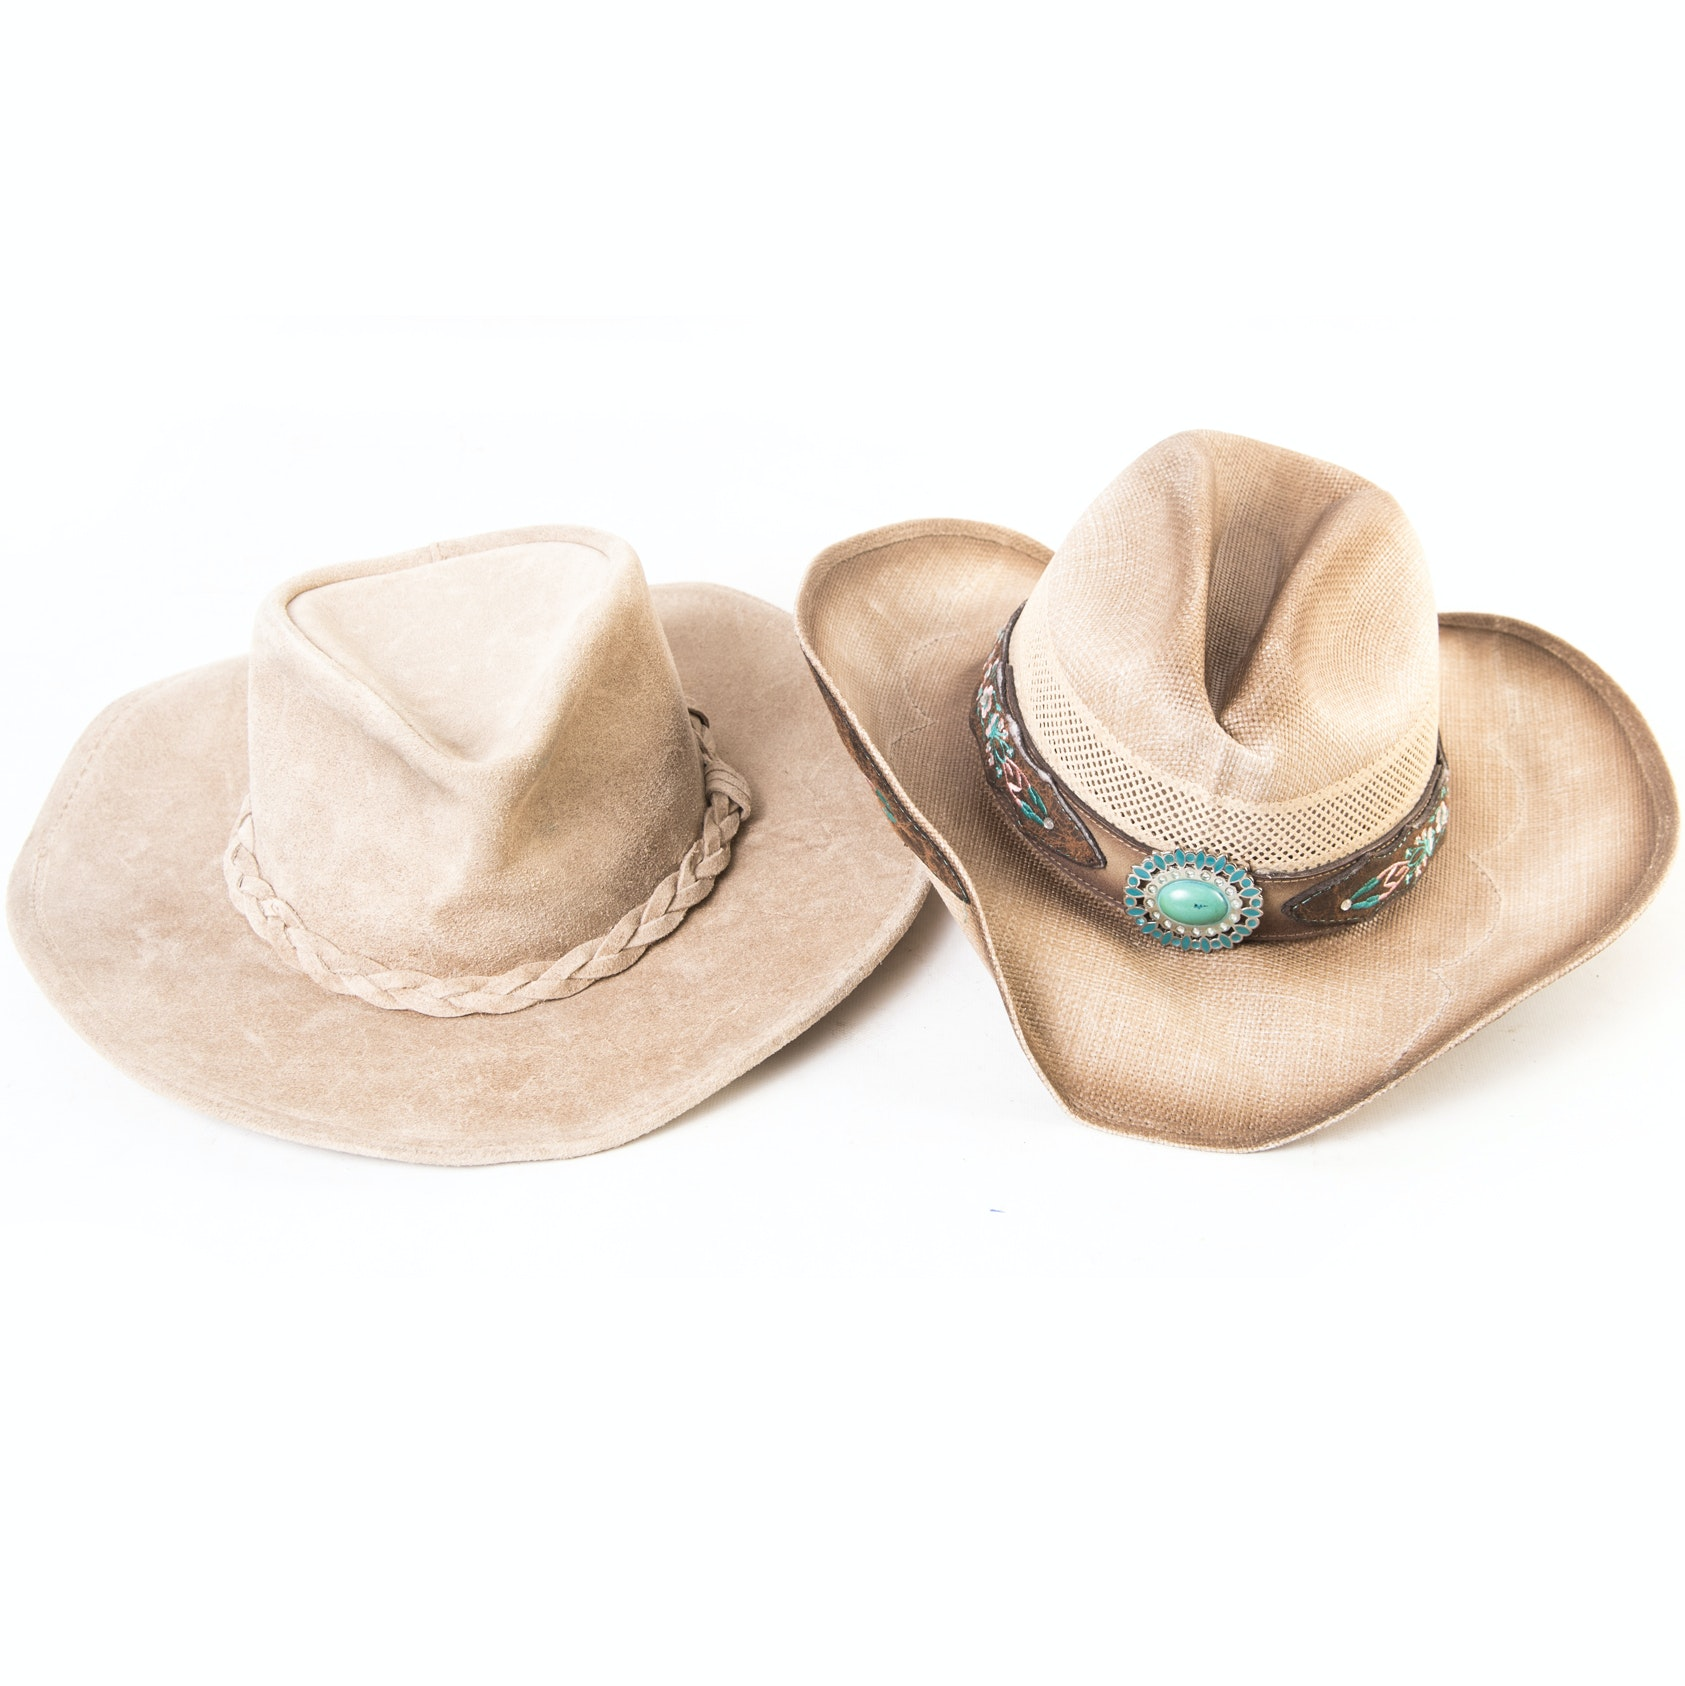 Women's Western Style Straw and Leather Hats Featuring Minnetonka